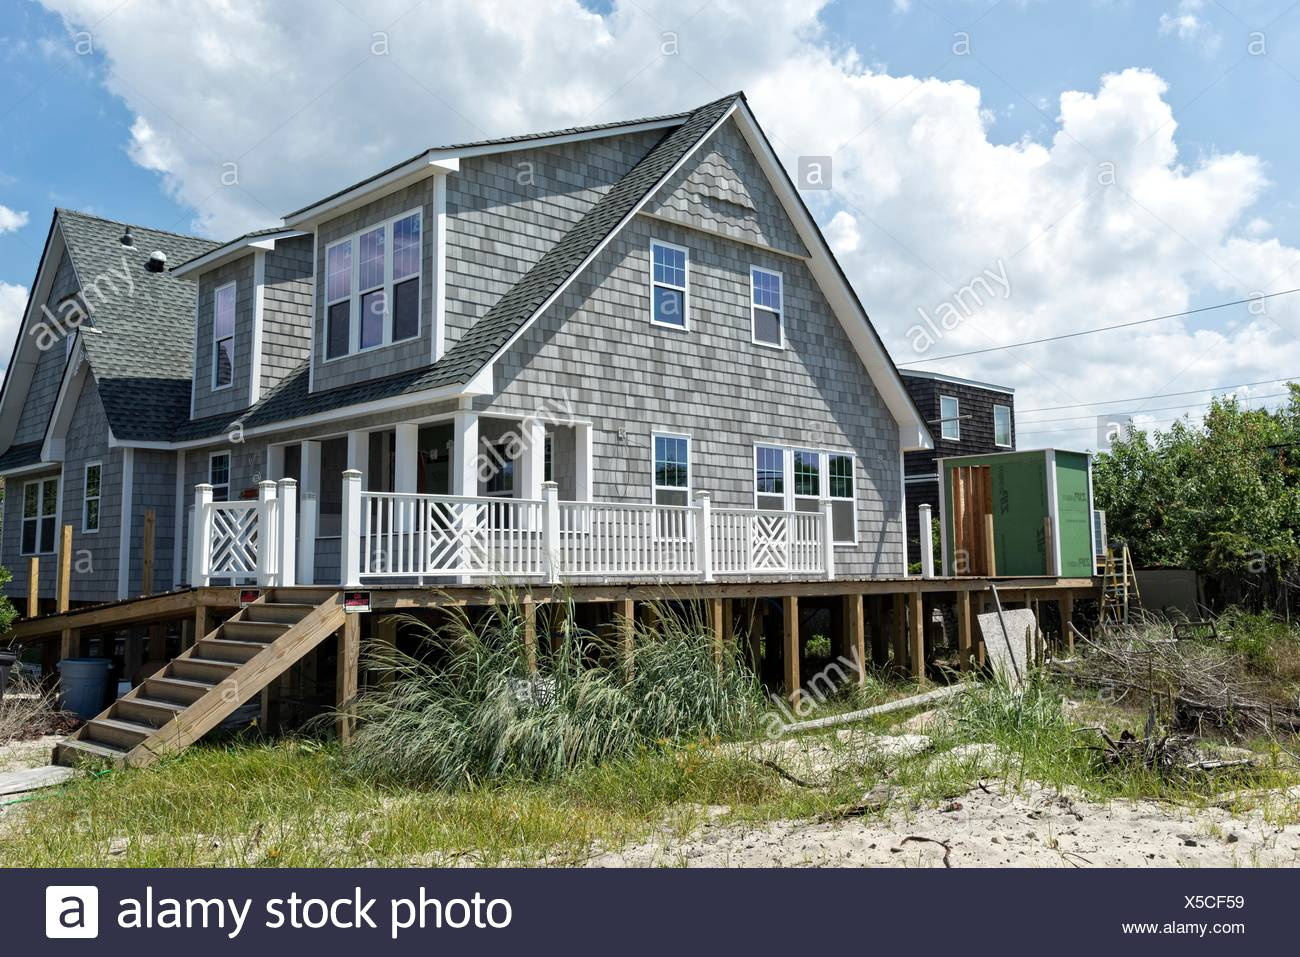 A home built on stilts to avoid storm and hurricane damage